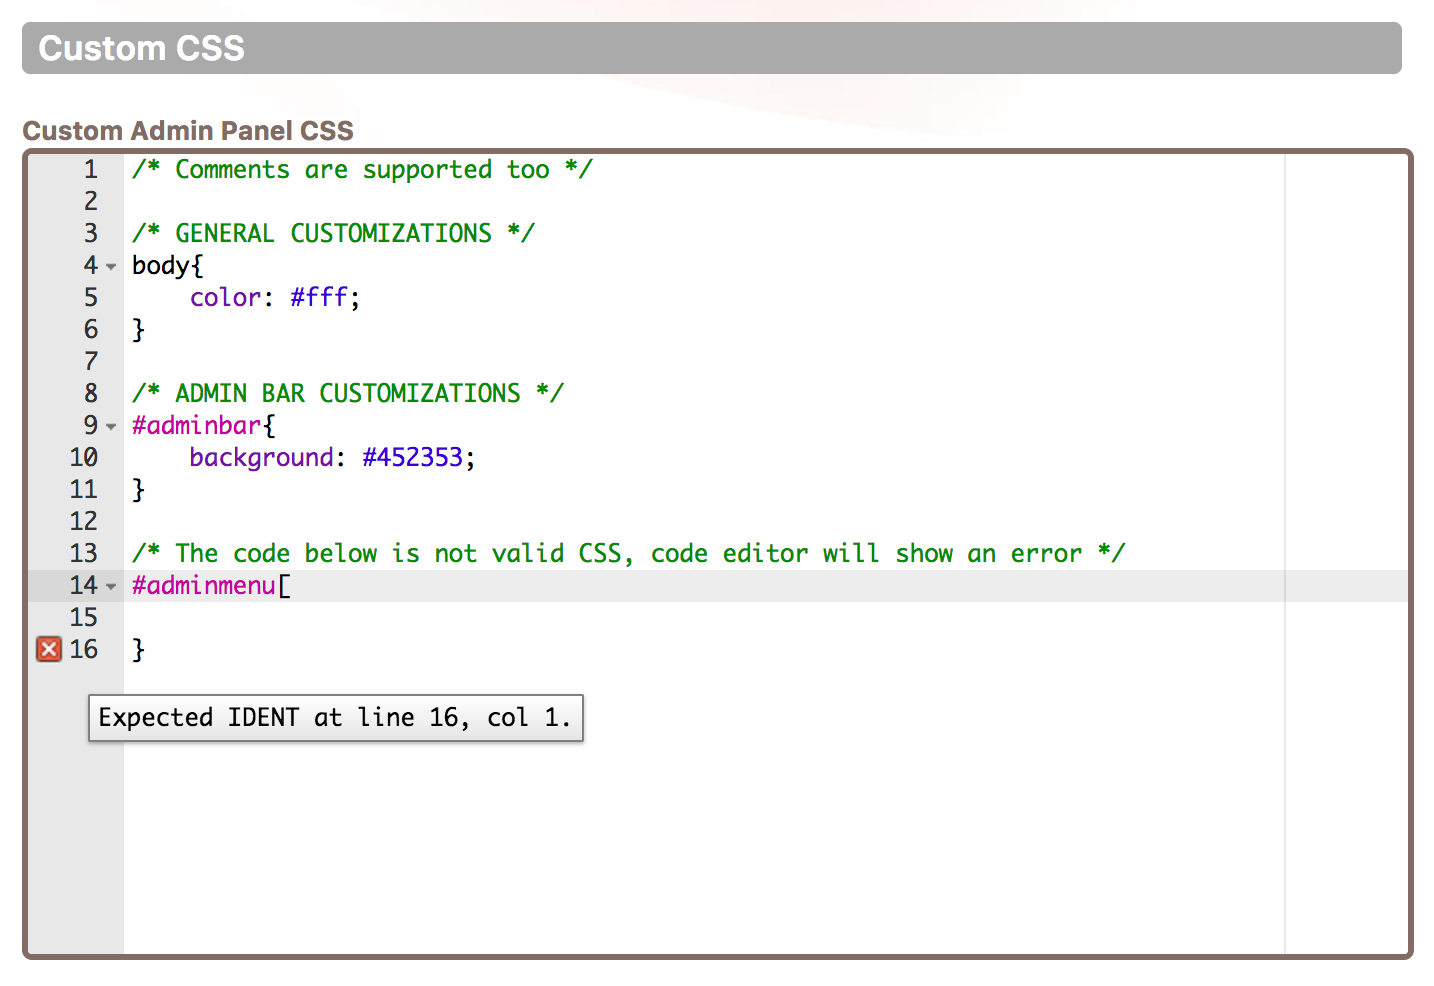 Cusmin code editor showing custom CSS with the syntax highlighting